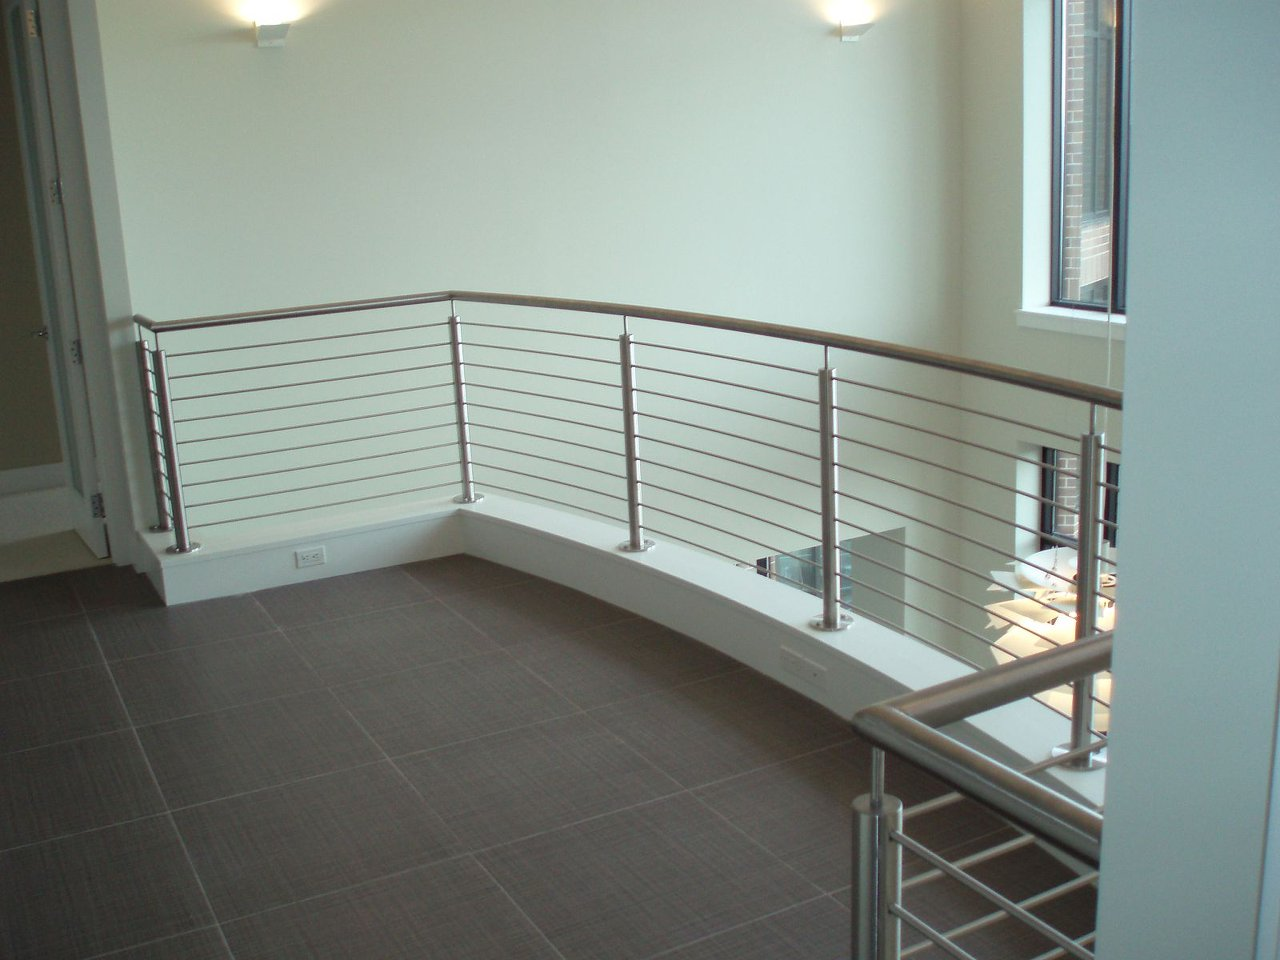 Stainless Steel Rod Railing